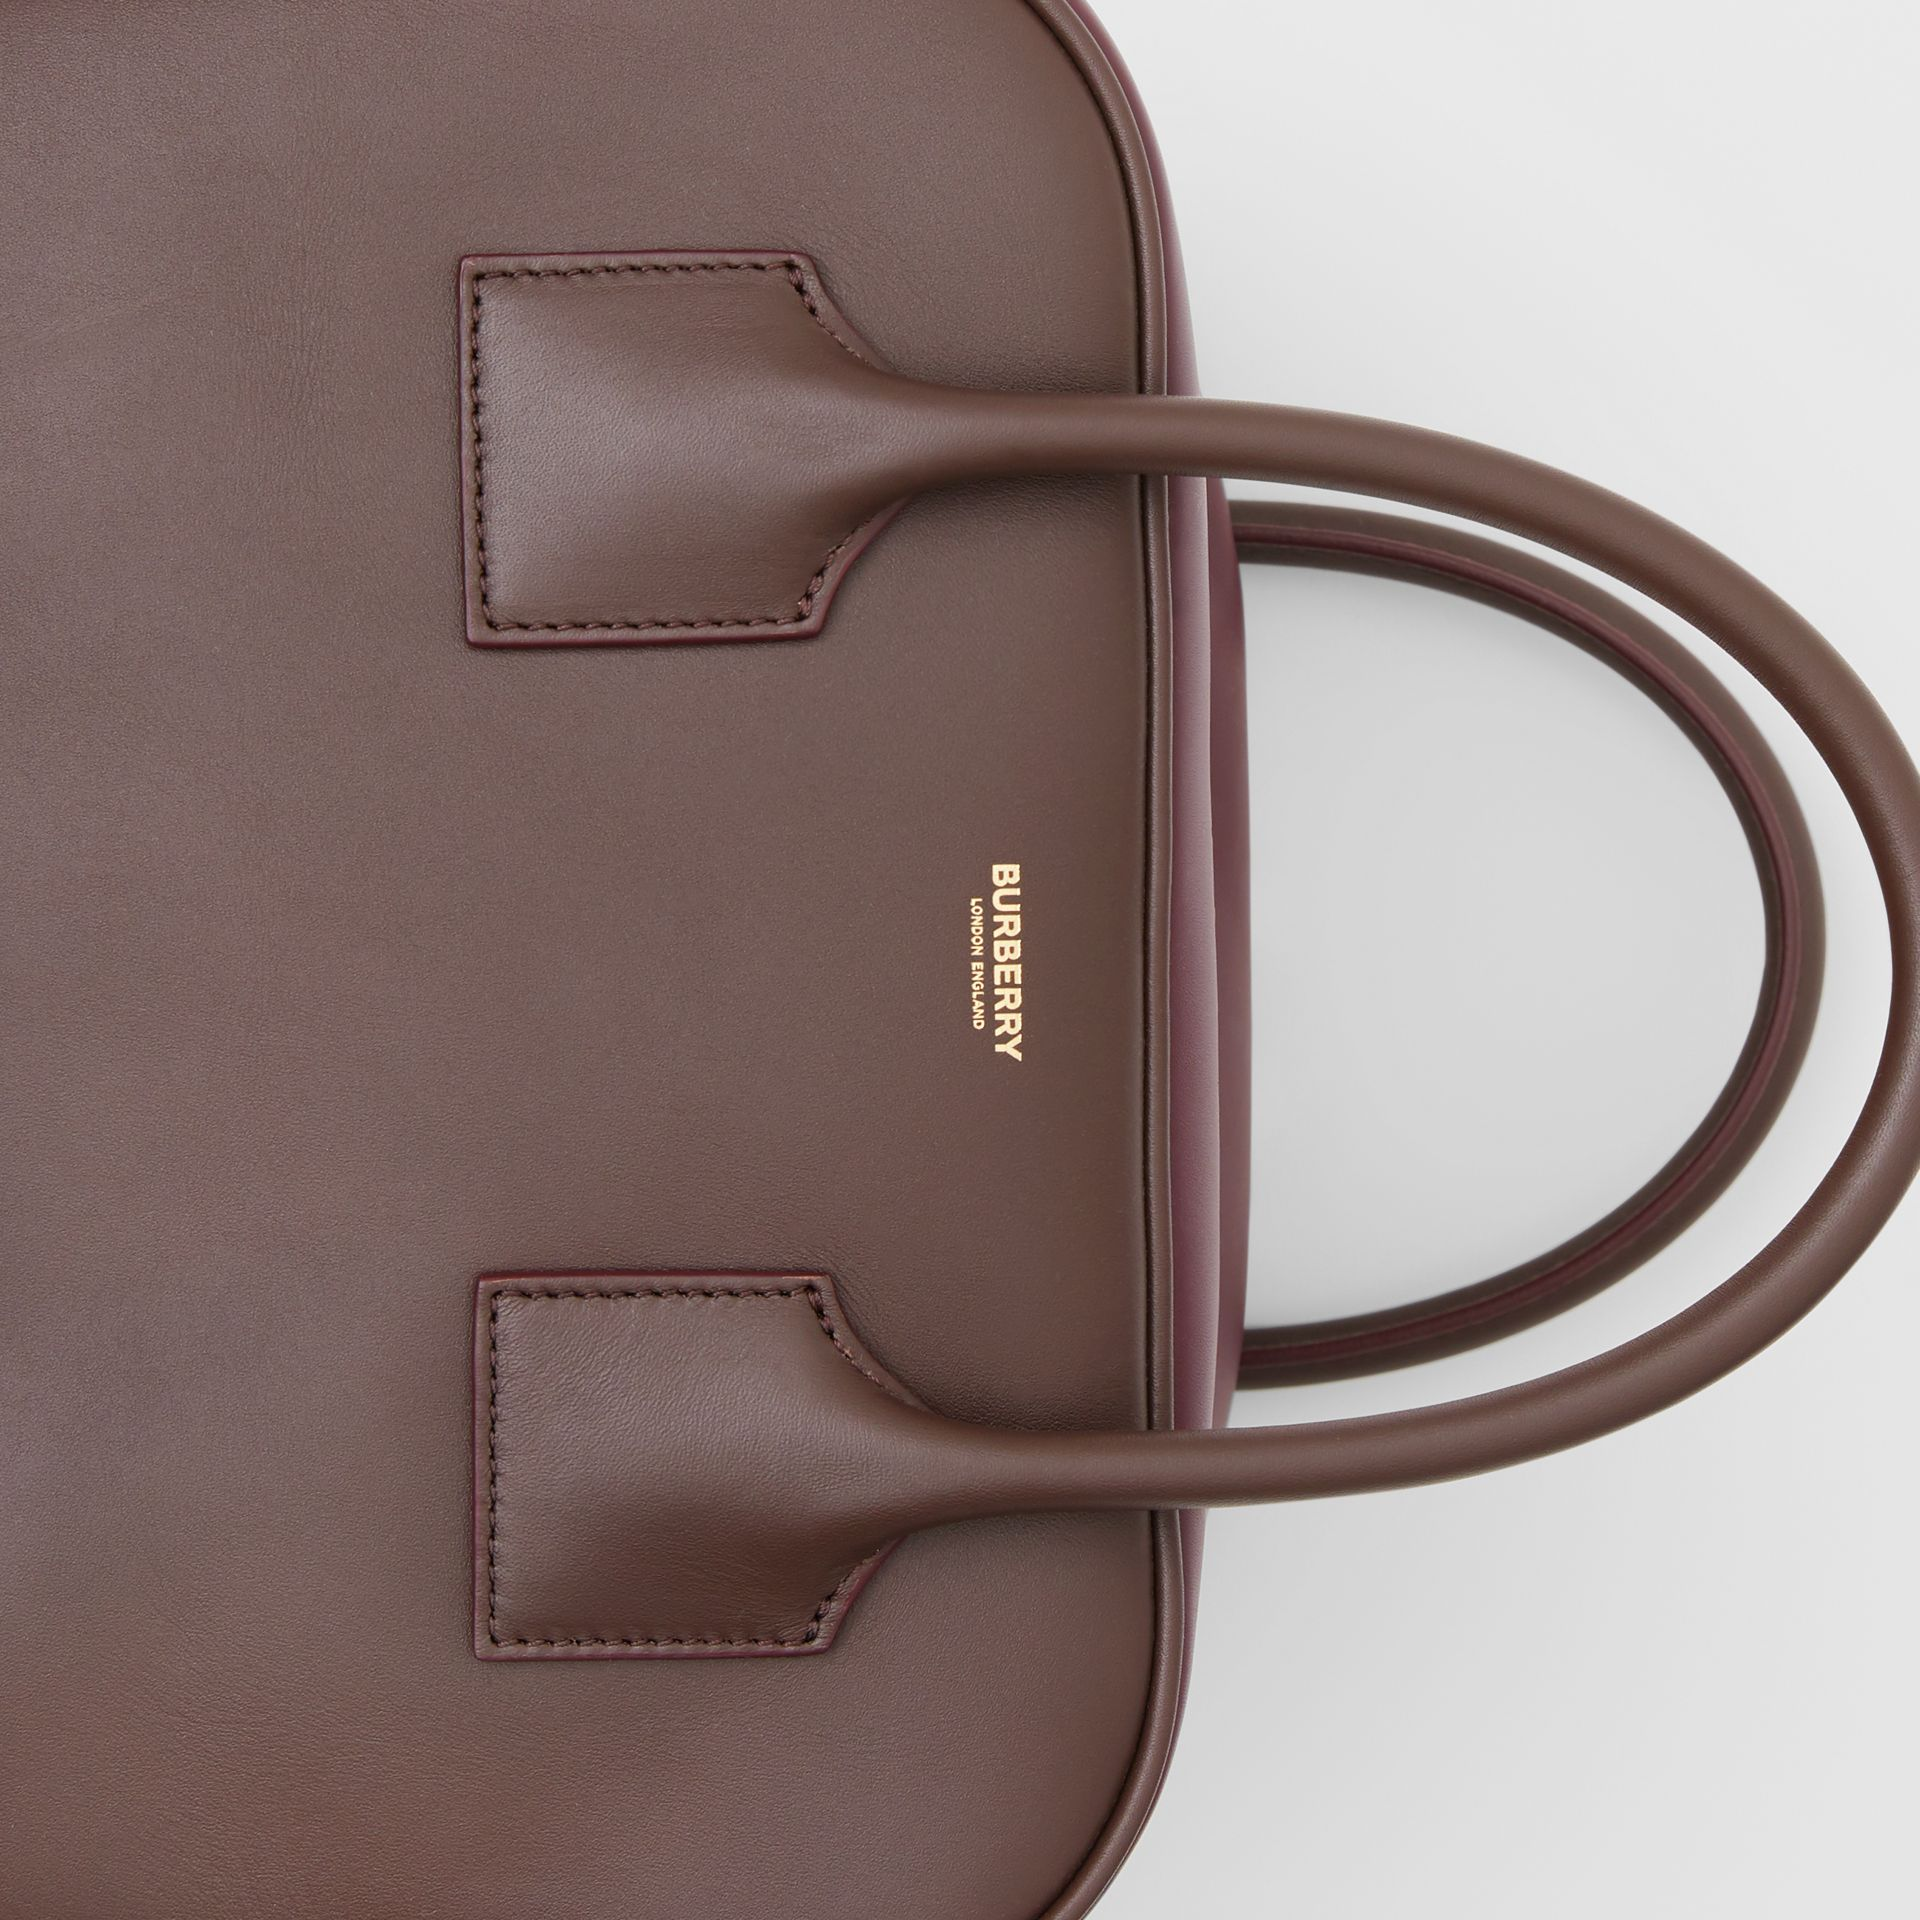 Medium Leather and Suede Cube Bag in Mahogany - Women | Burberry - gallery image 1